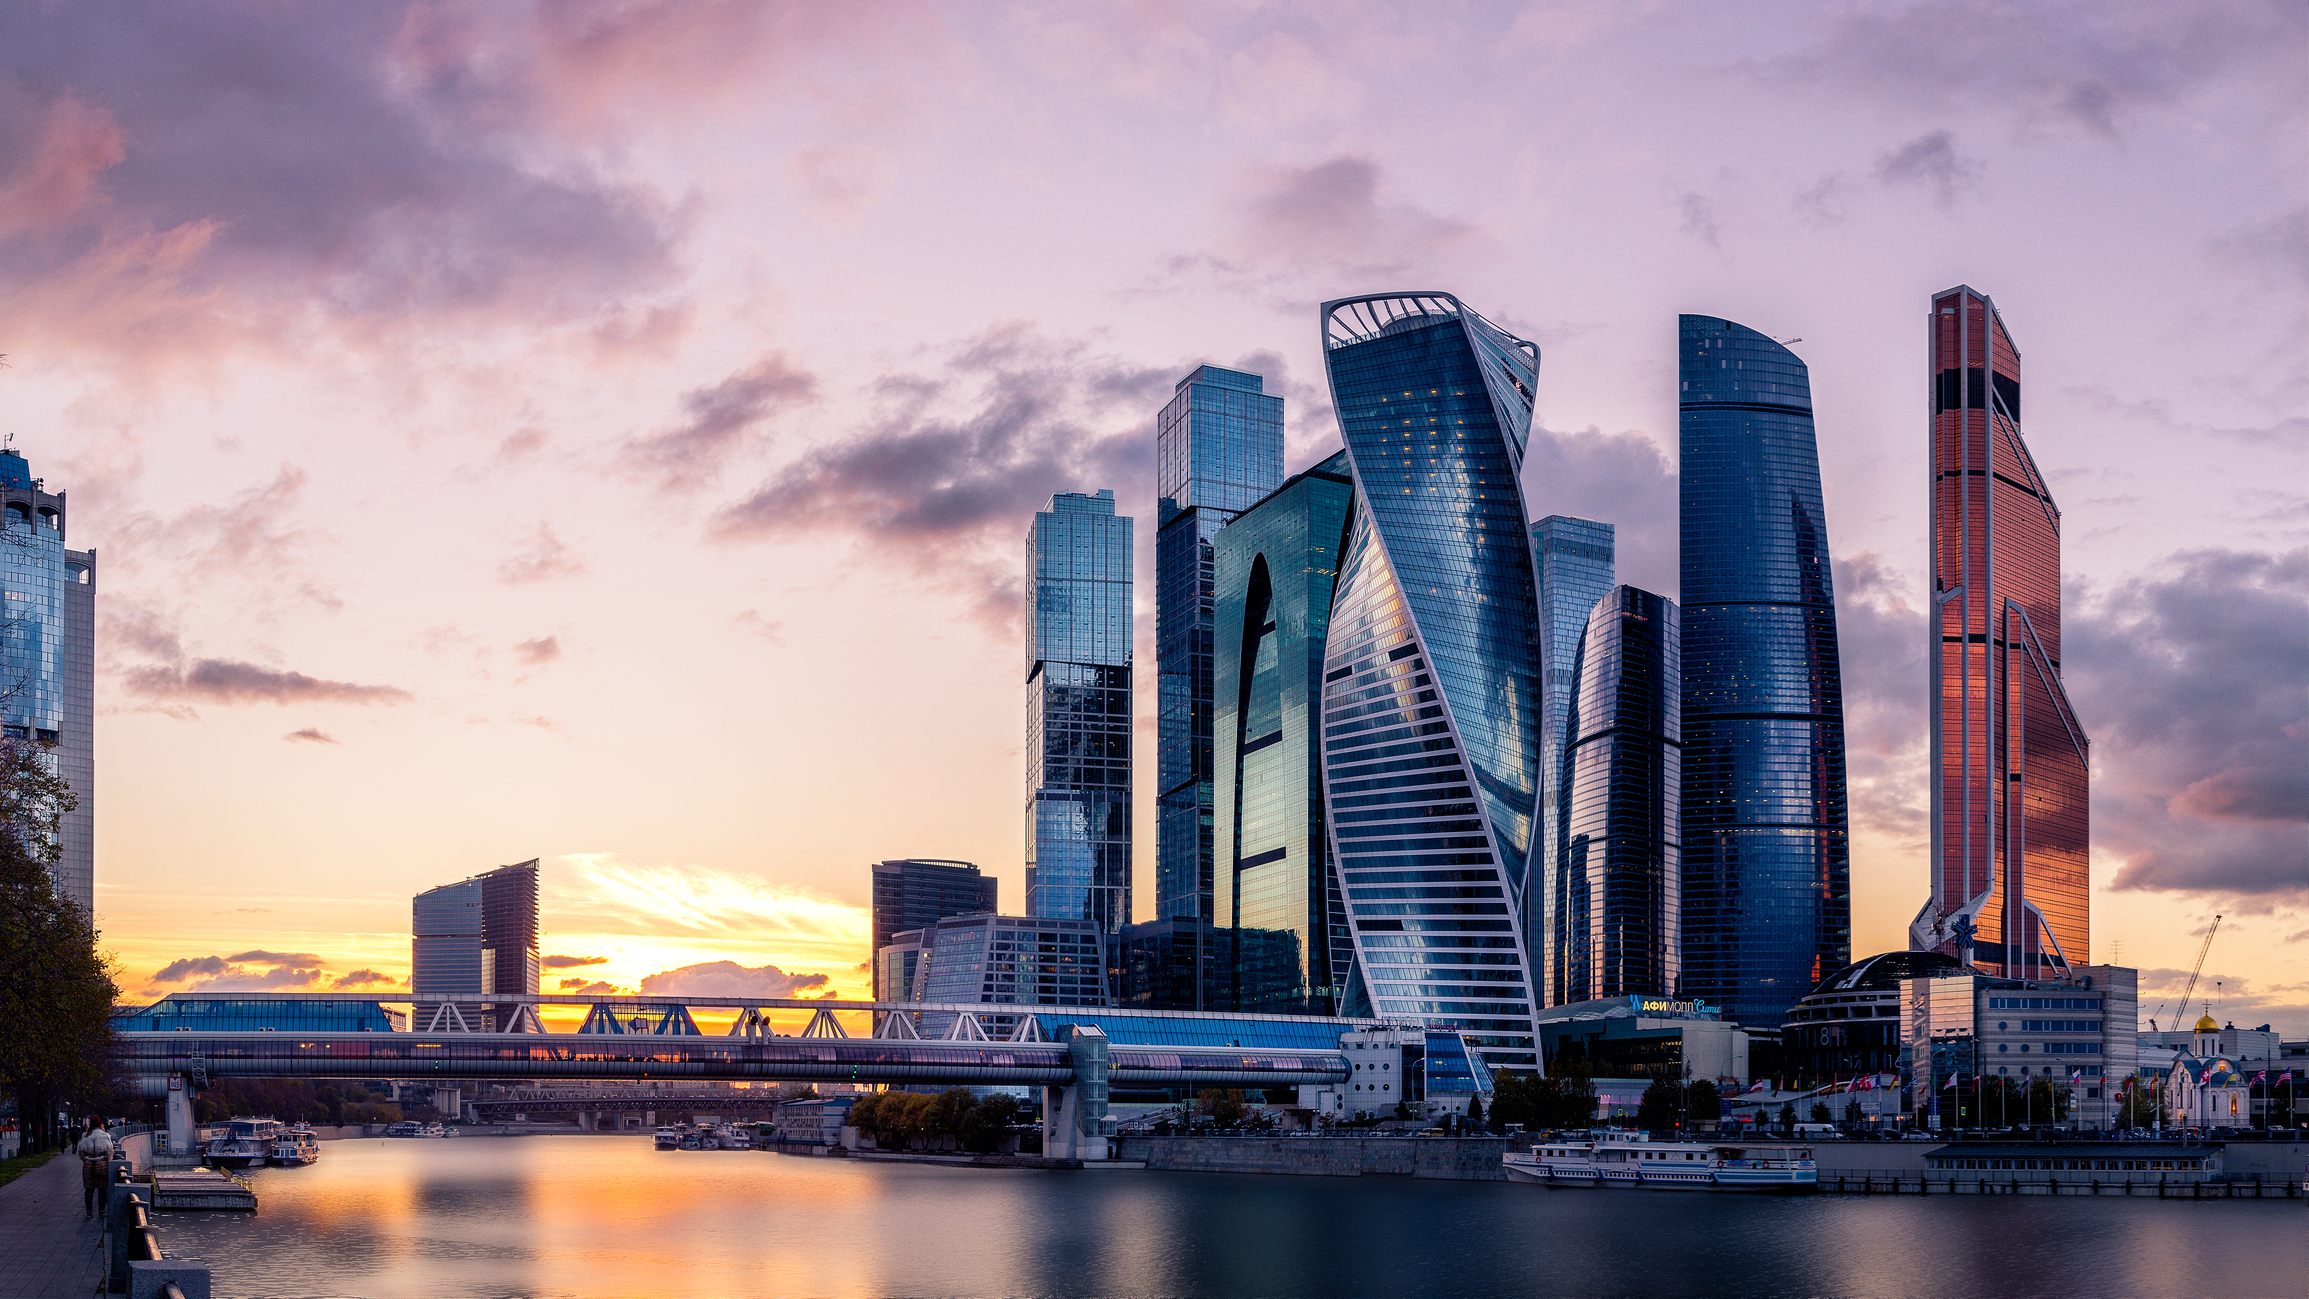 Moscow International Business Centre skyscrapers